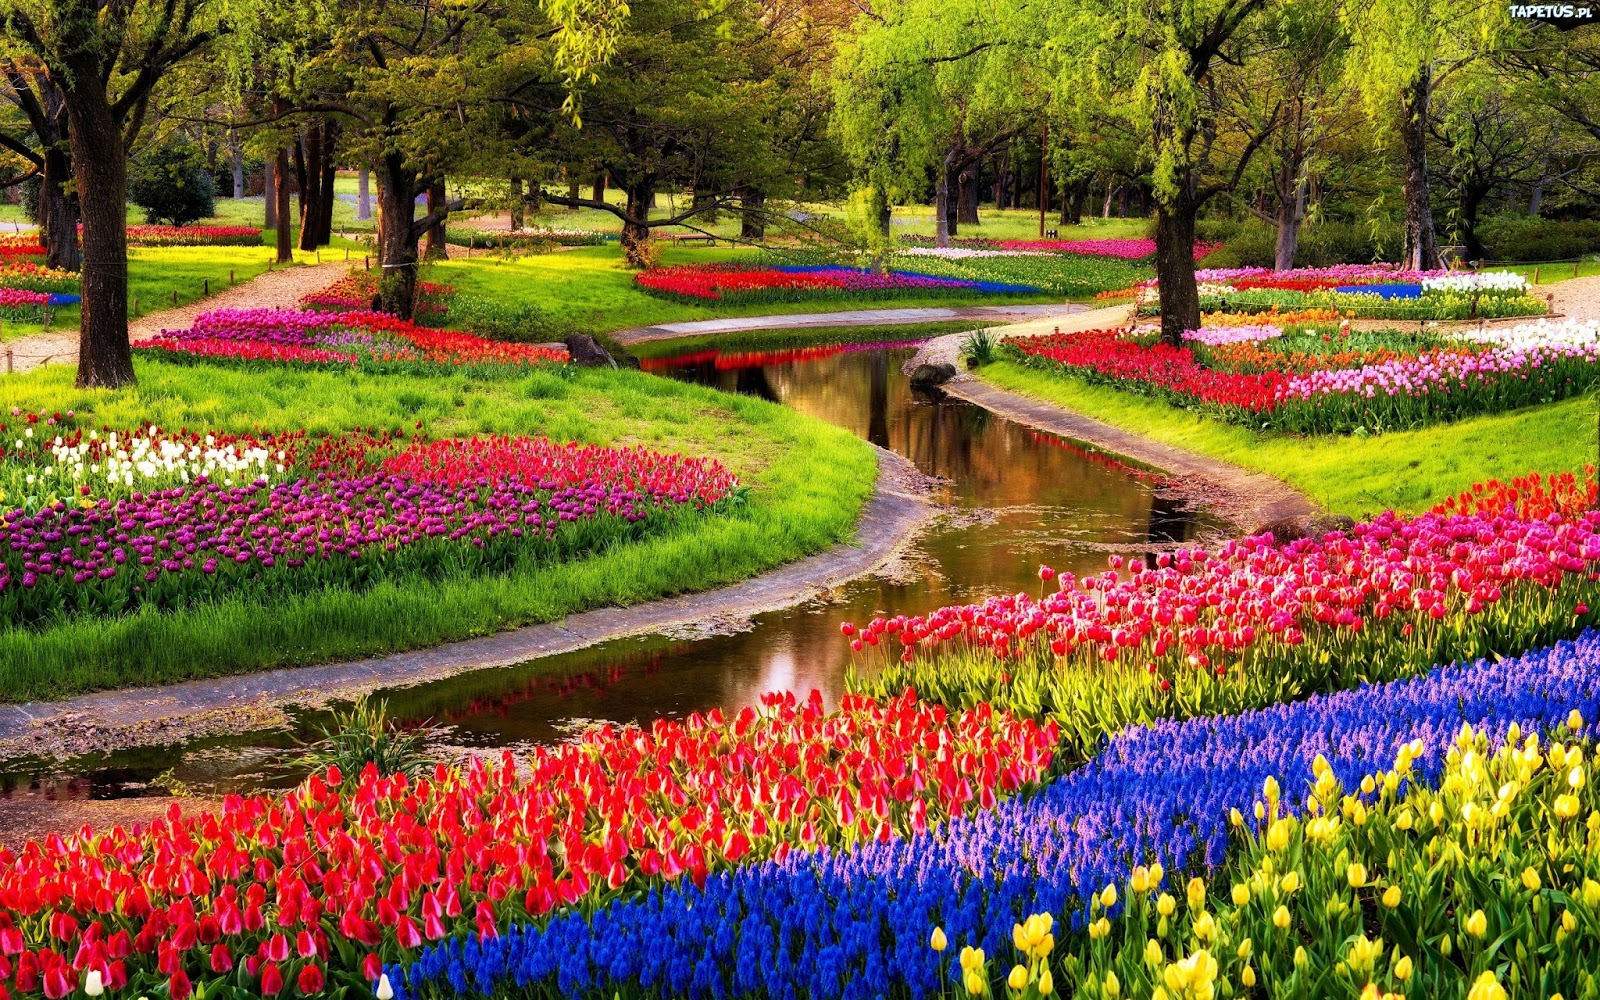 Keukenhof Park, Holland, The Netherlands Hd Background